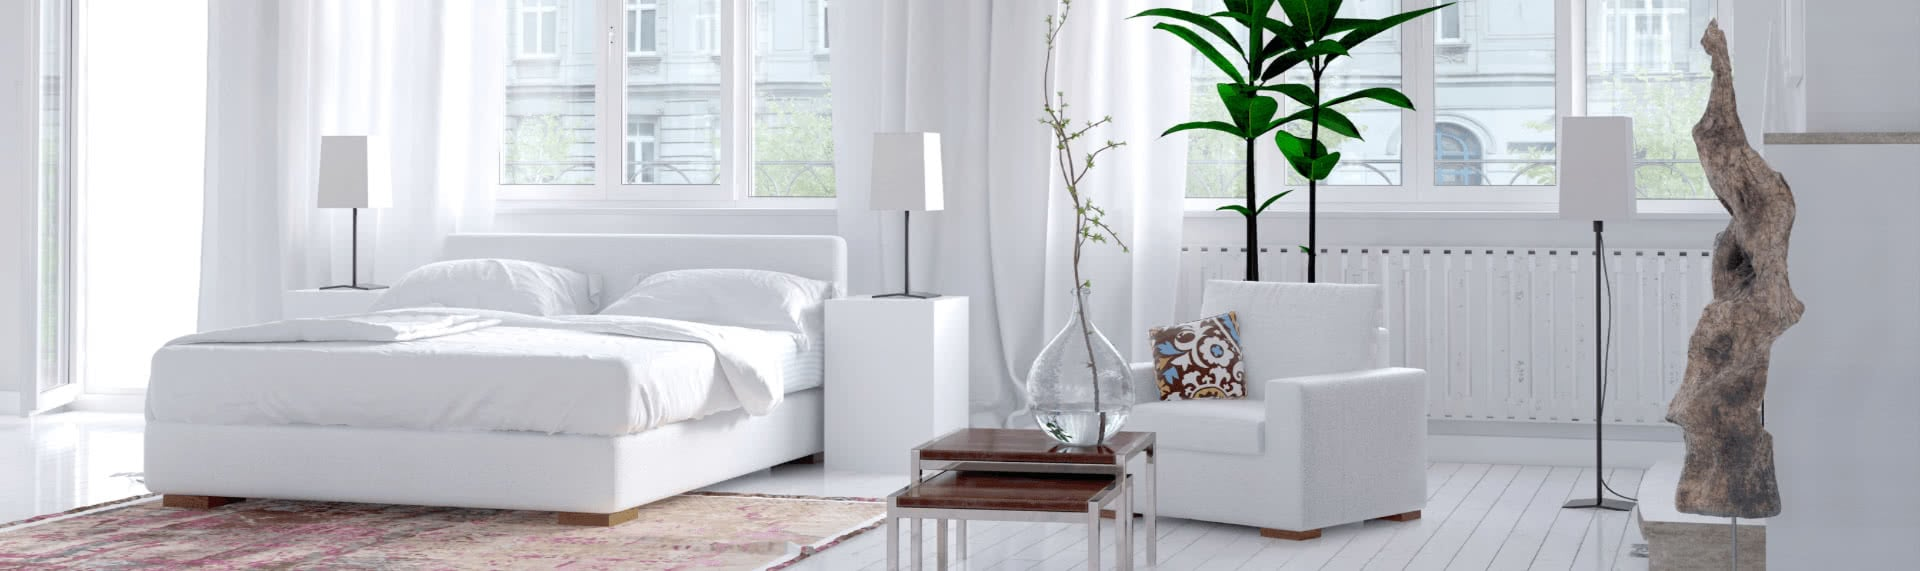 white clean apartment